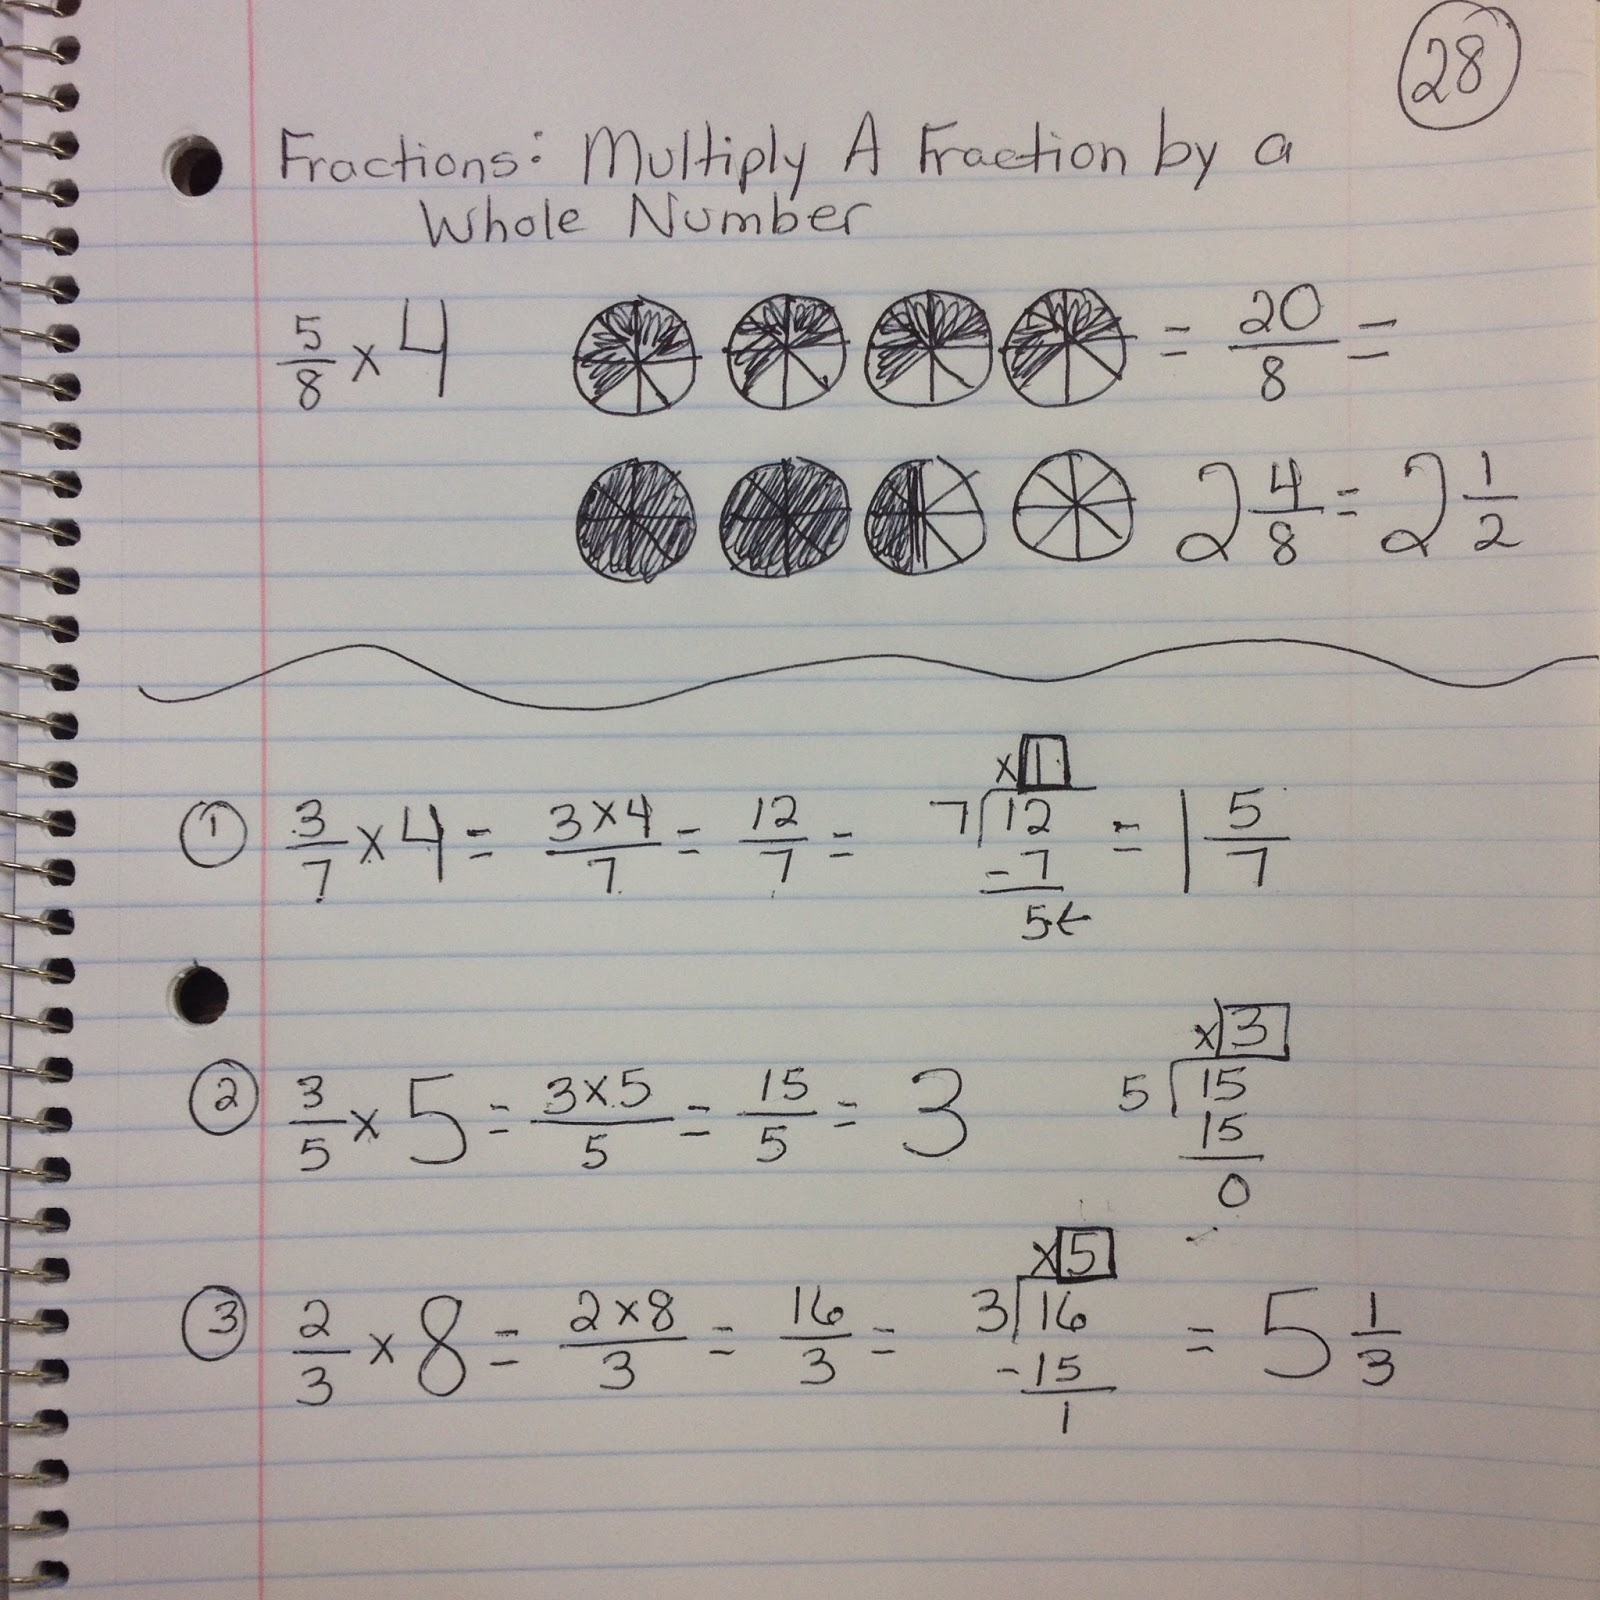 how to multiply a fraction and a whole number